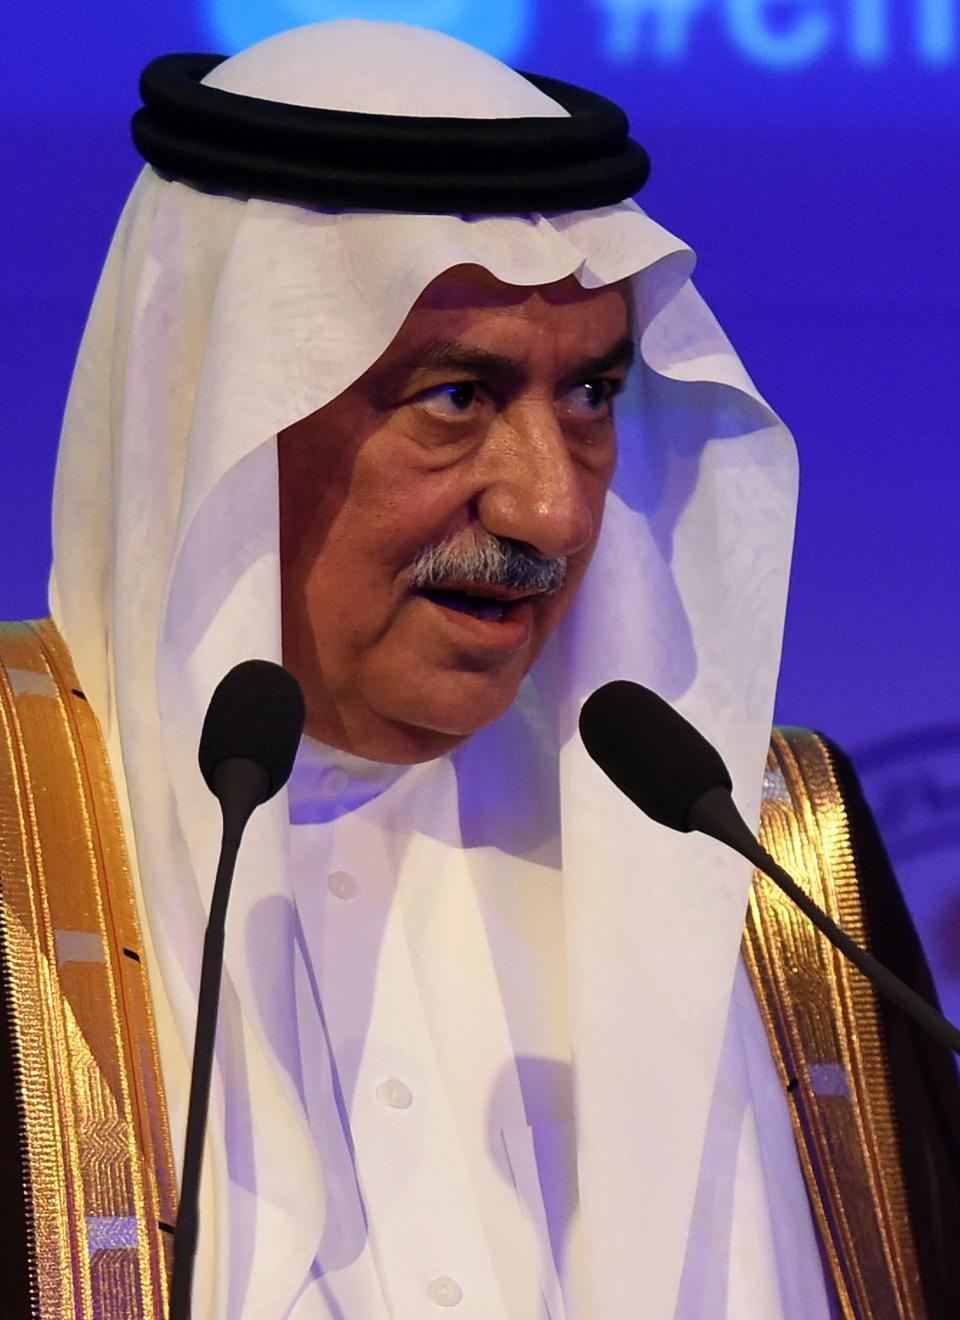 'We're Doomed For Bankruptcy' Unless Changes Made, Says Saudi Official